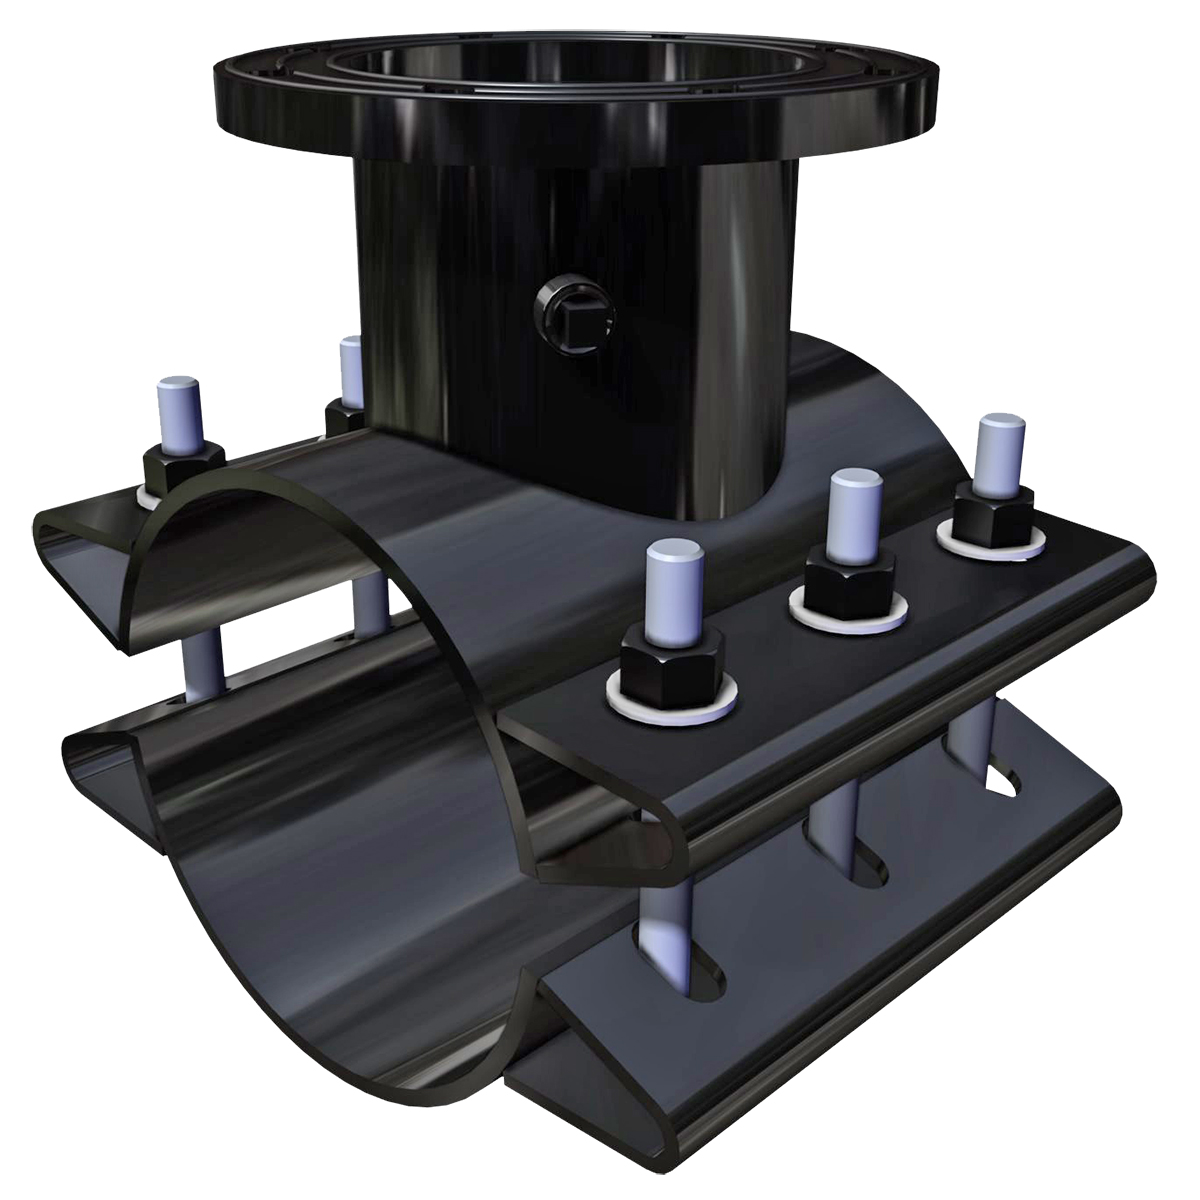 FTS420 - Fabricated steel tapping sleeve with triangular side barsNominal Sizes6 - 42 inches, larger sizes available upon requestWorking Pressure6